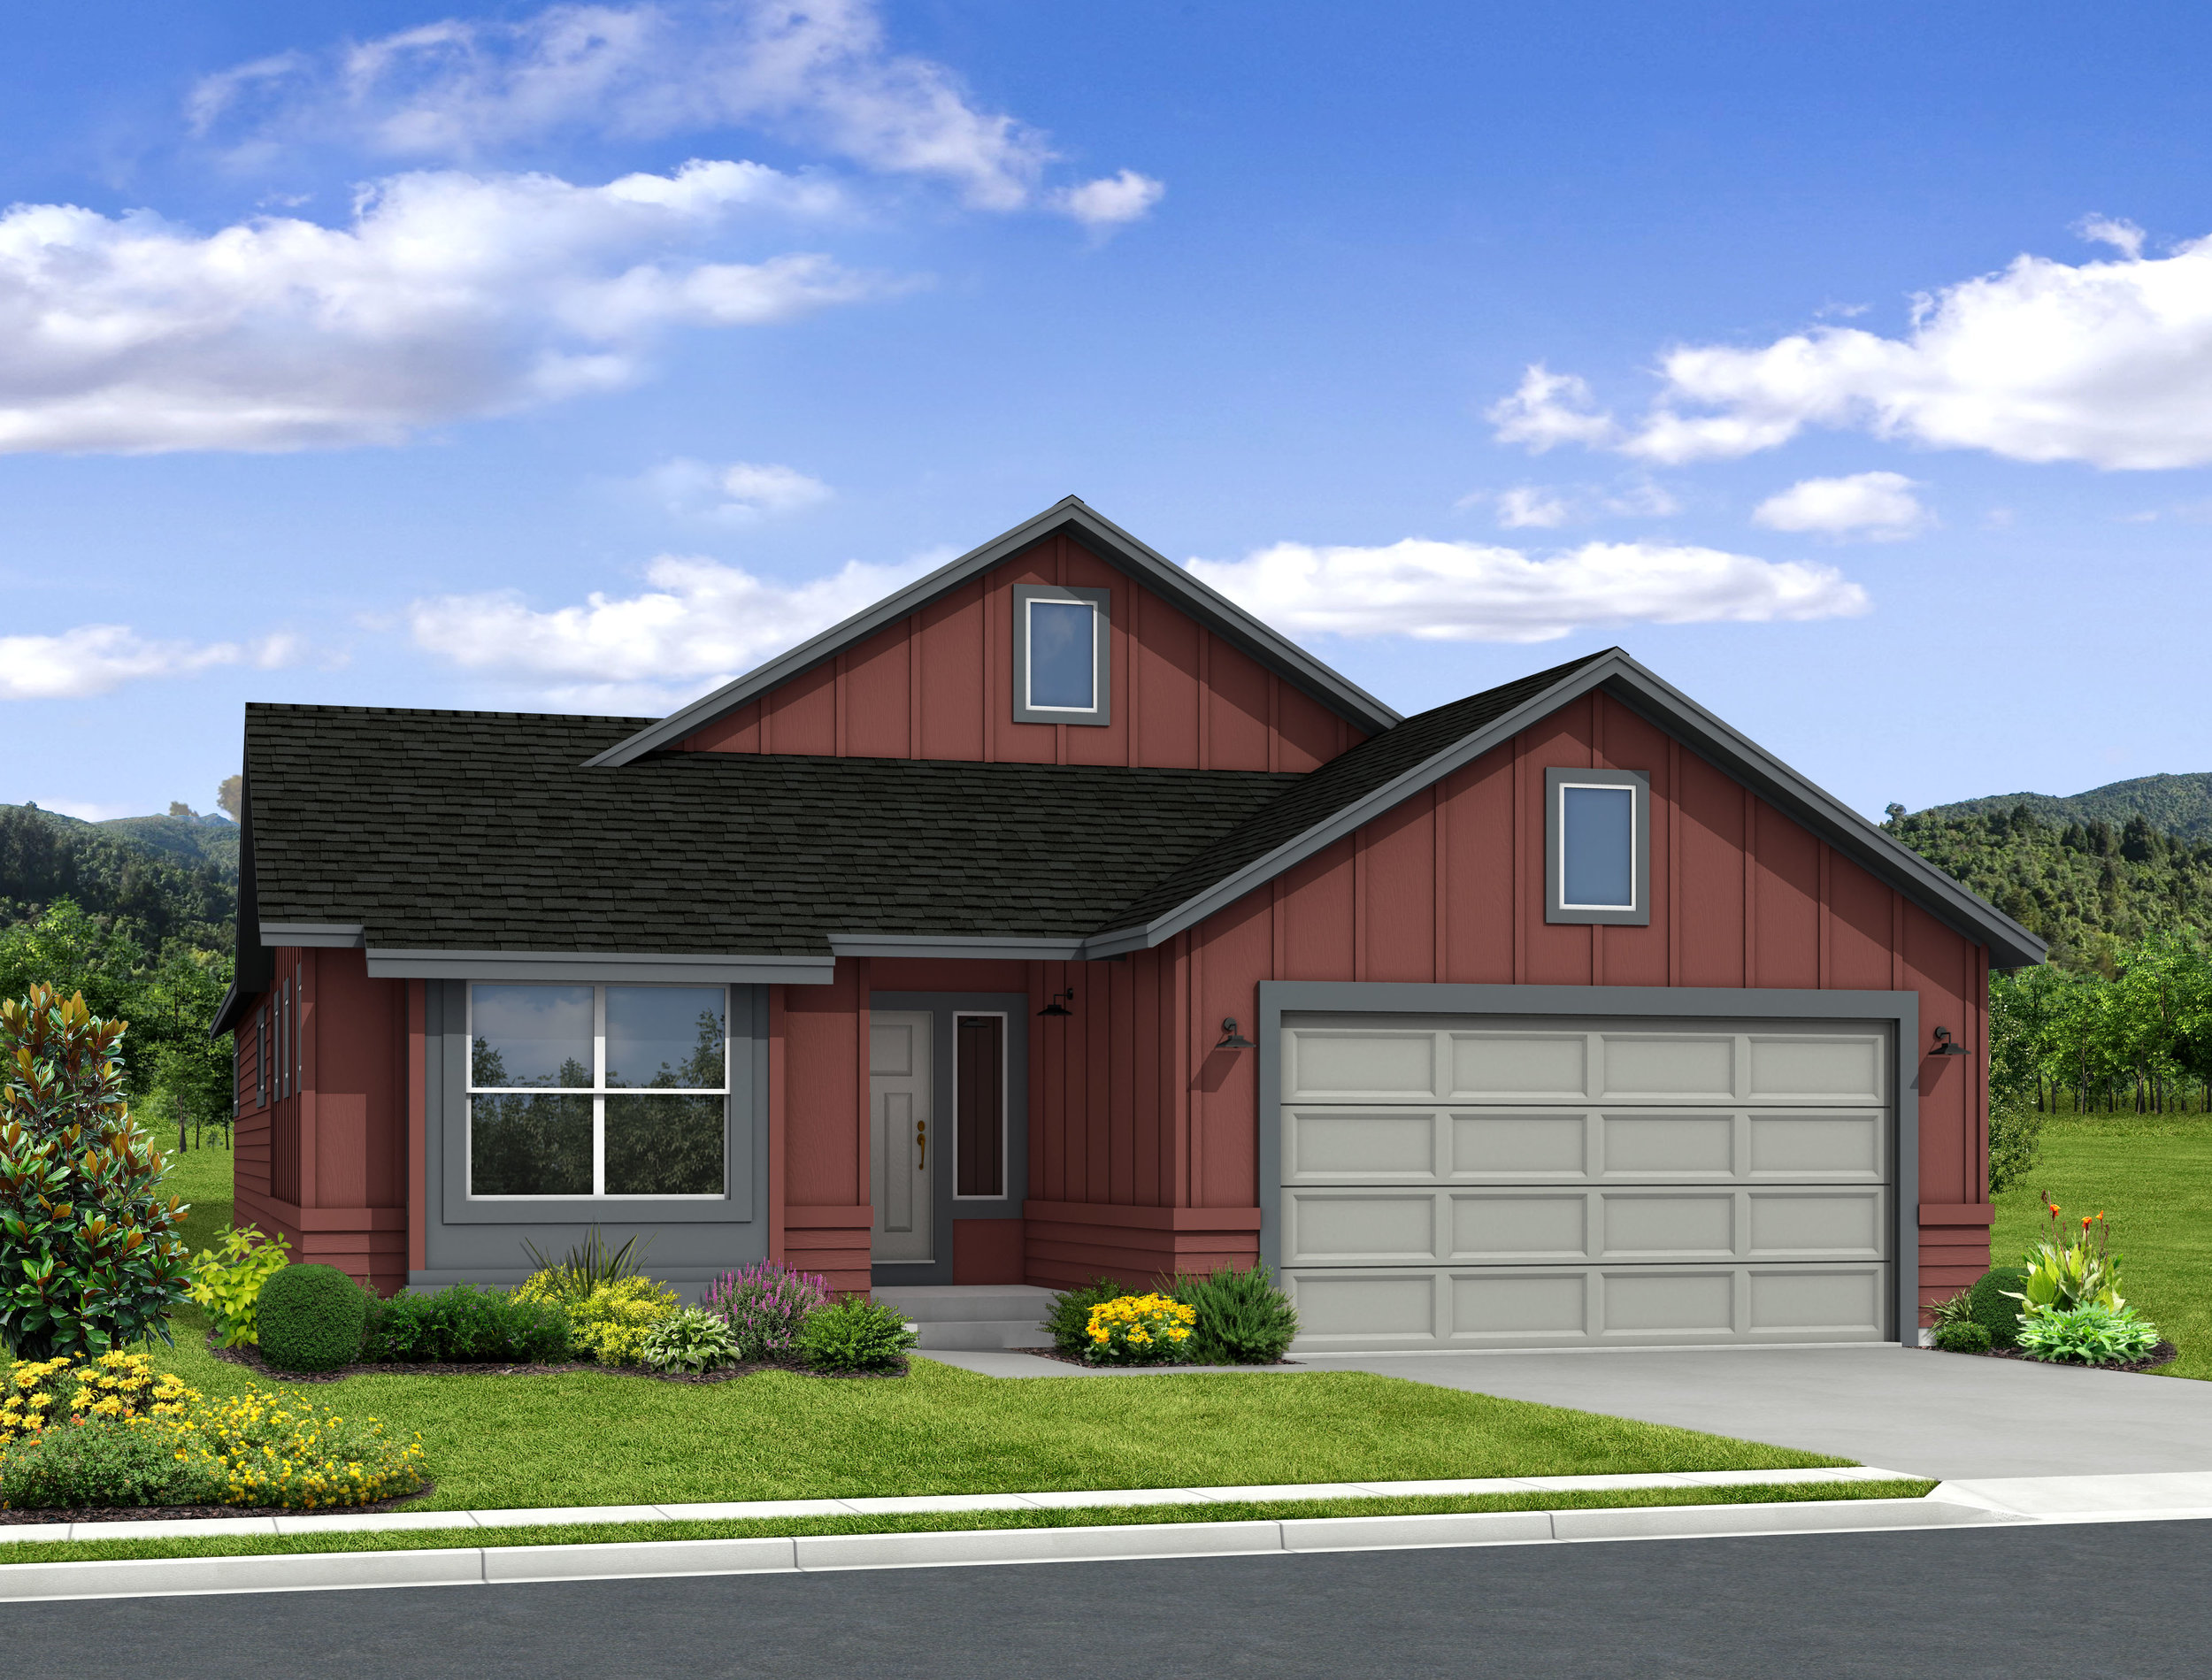 Keller Homes-Cumbre Vista-Farmhouse Series_1505_S.jpg